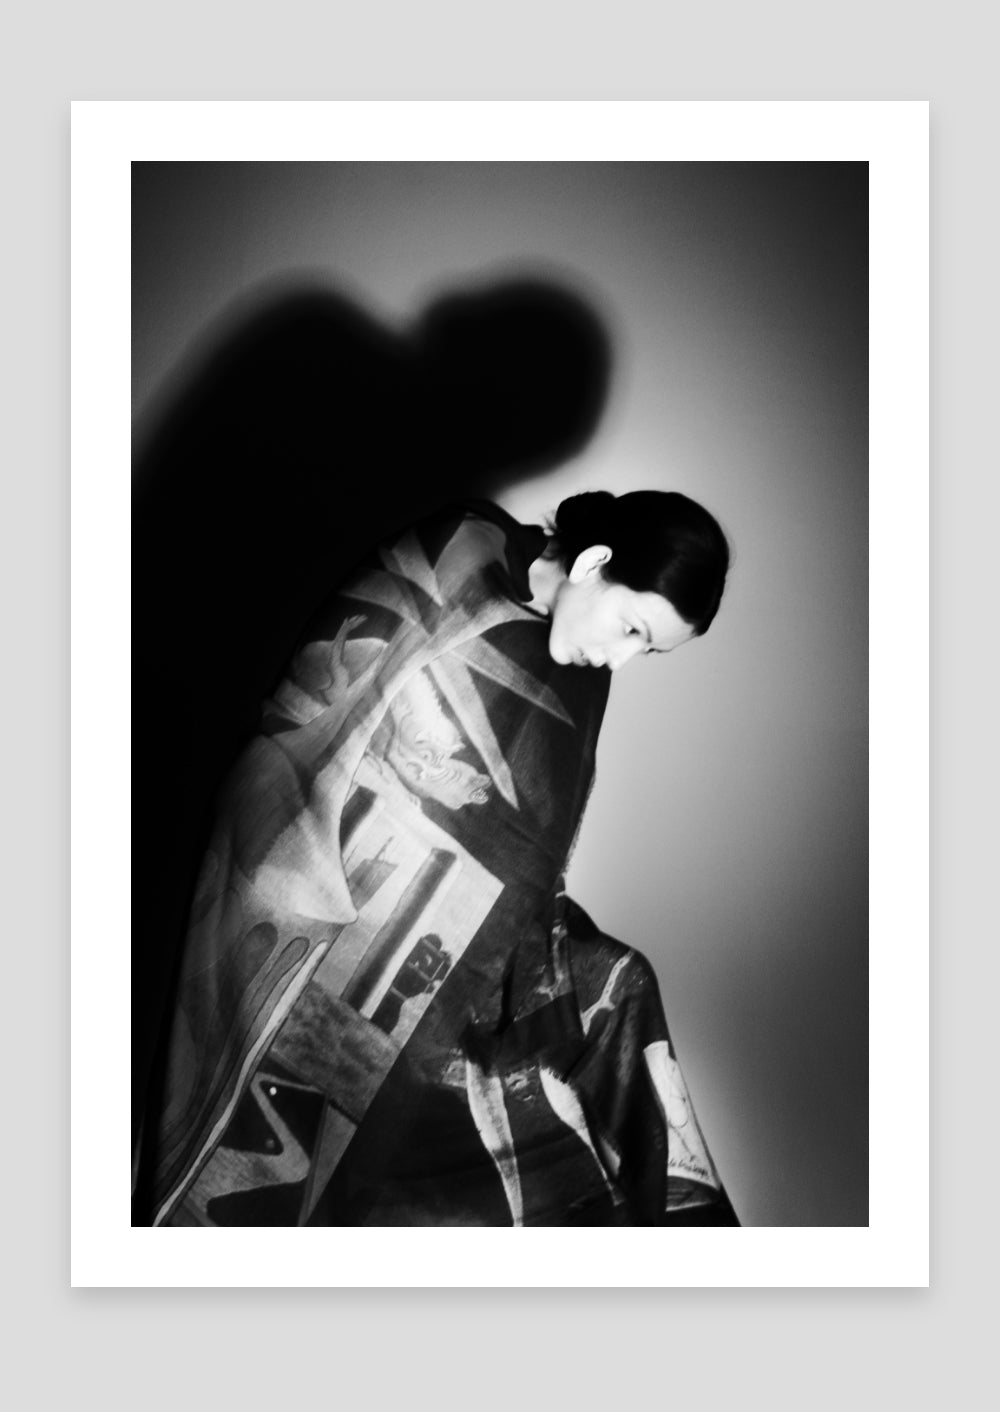 black and white photograh, man ray scarf